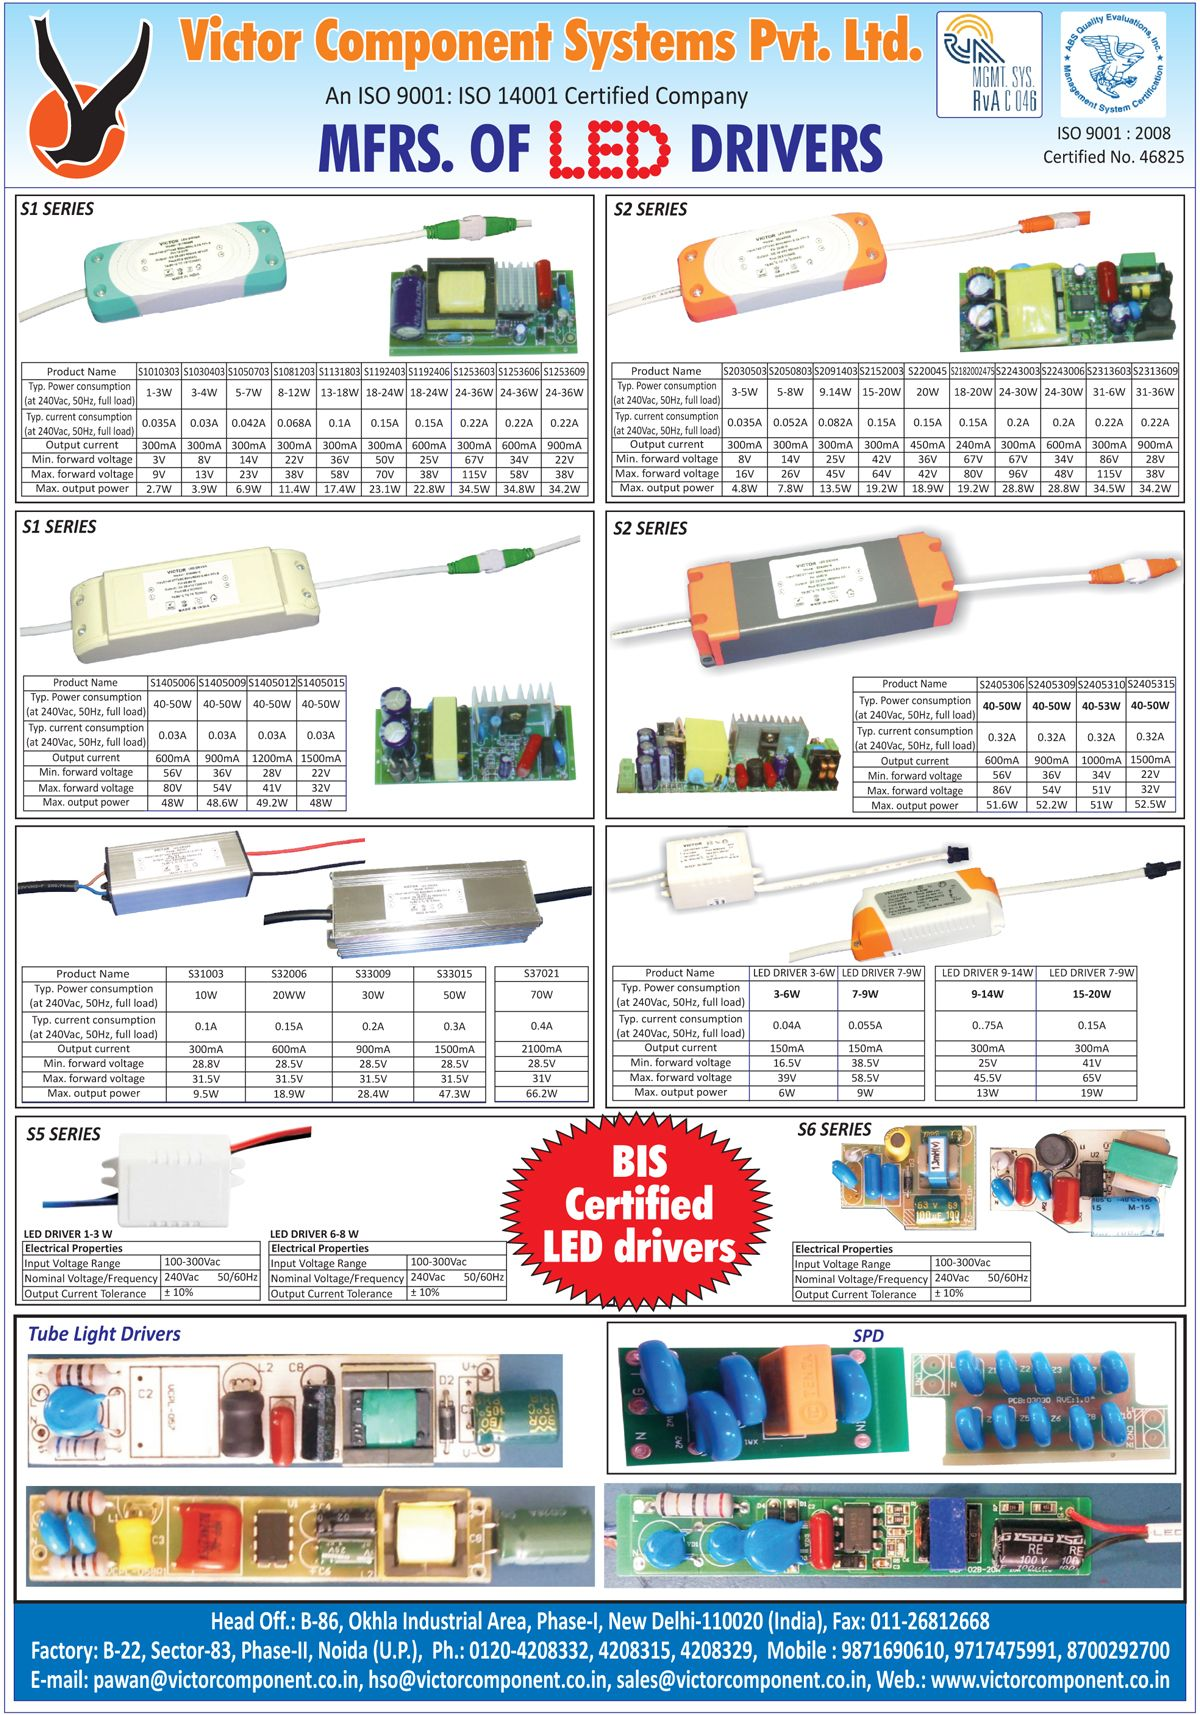 Victor Component Systems Pvt Ltd New Delhi 110020 Deals Wiring Harness Manufacturers In Led Drivers Tube Light Spd